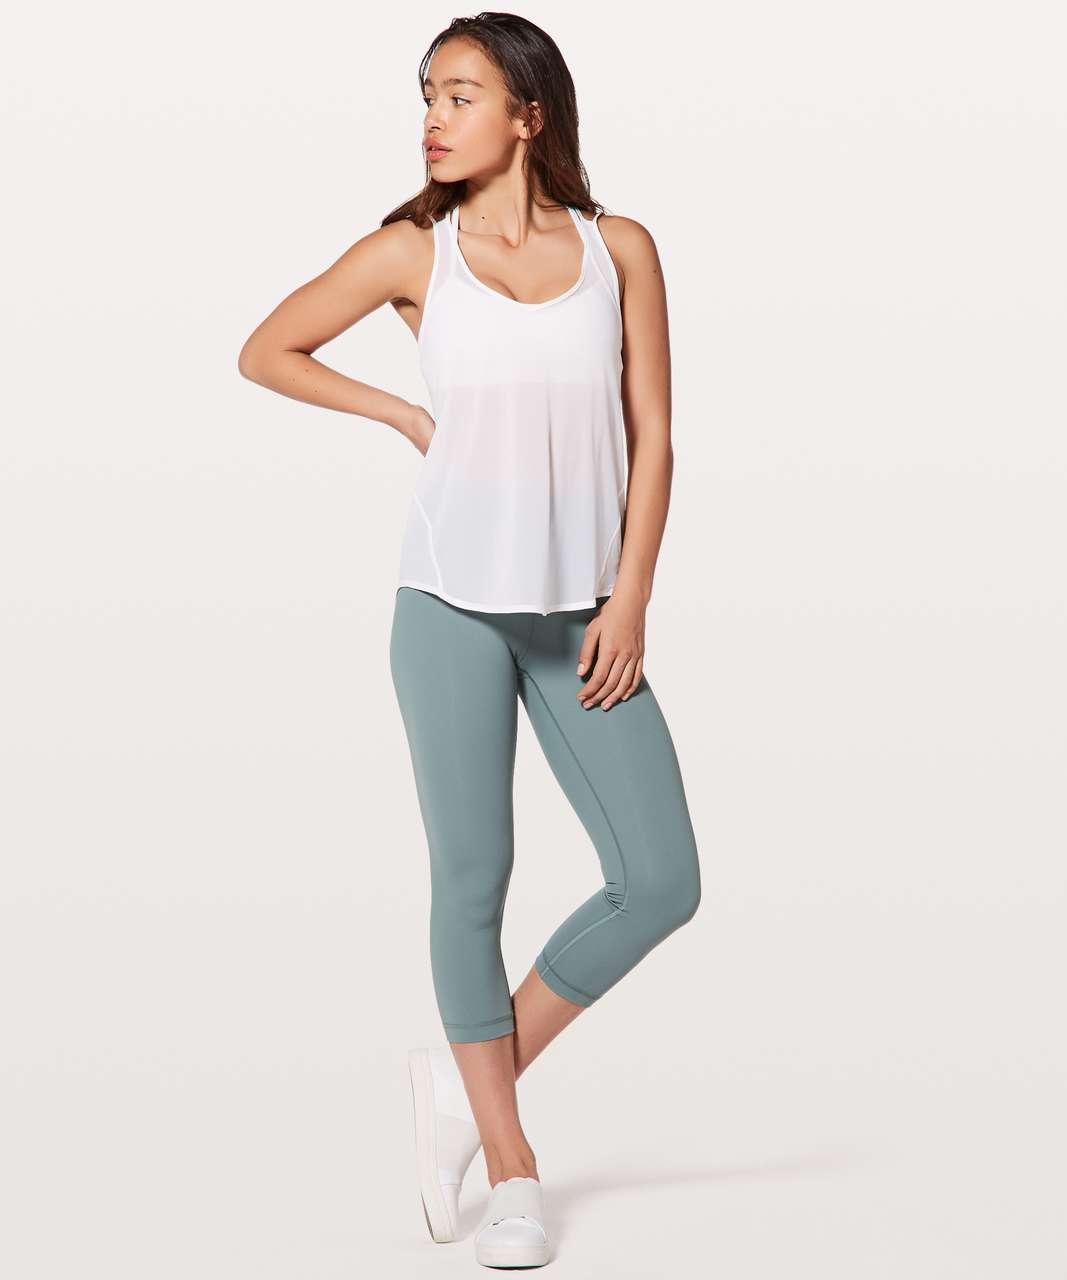 Lululemon Such A Cinch Tank - White